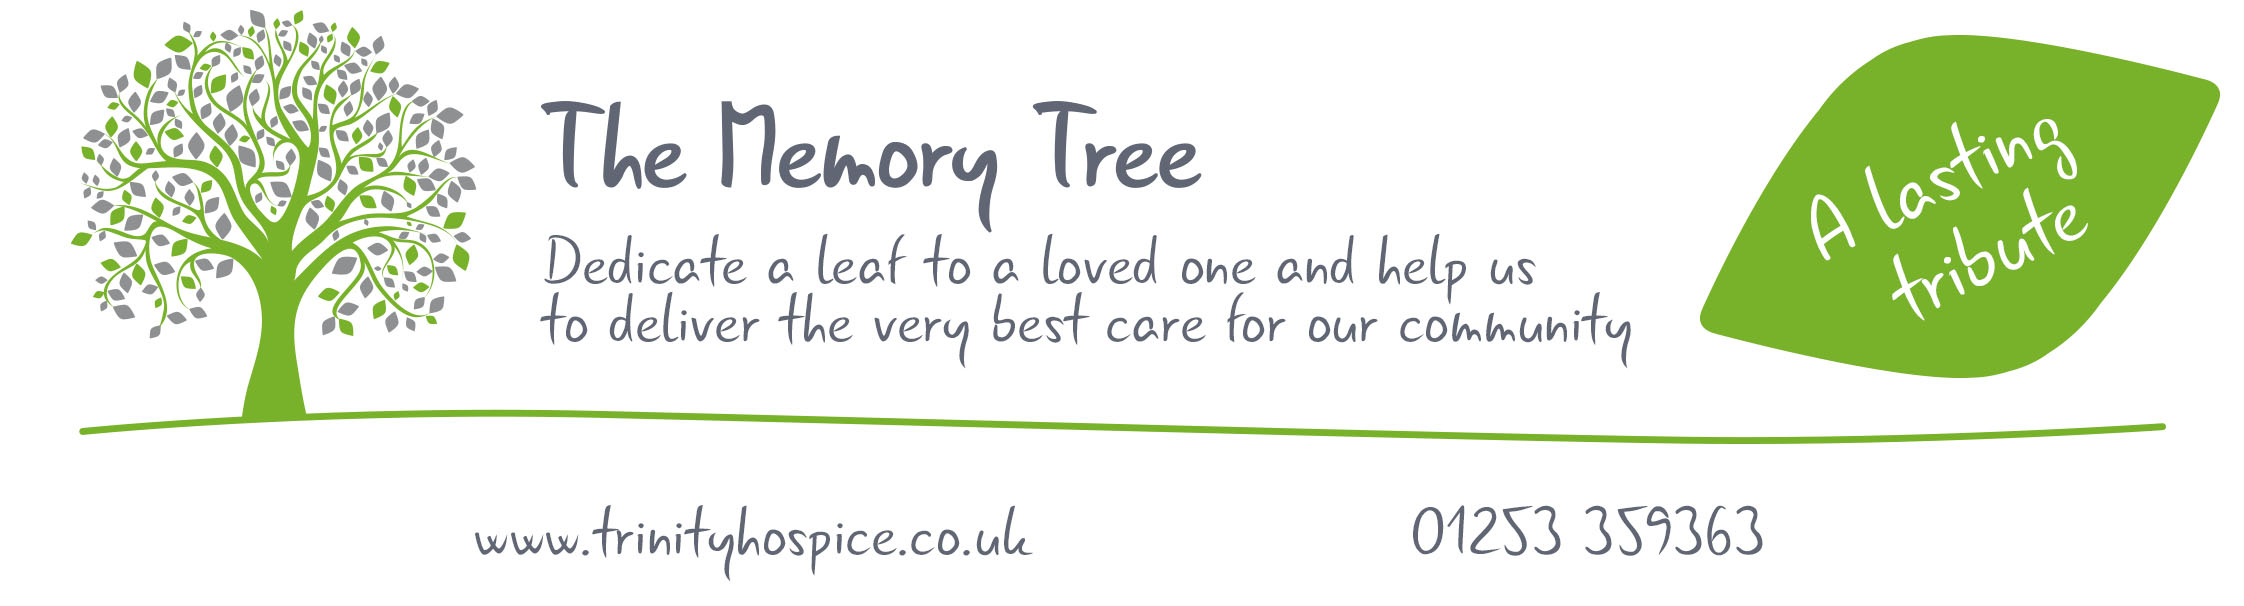 memory-tree-footer-banner